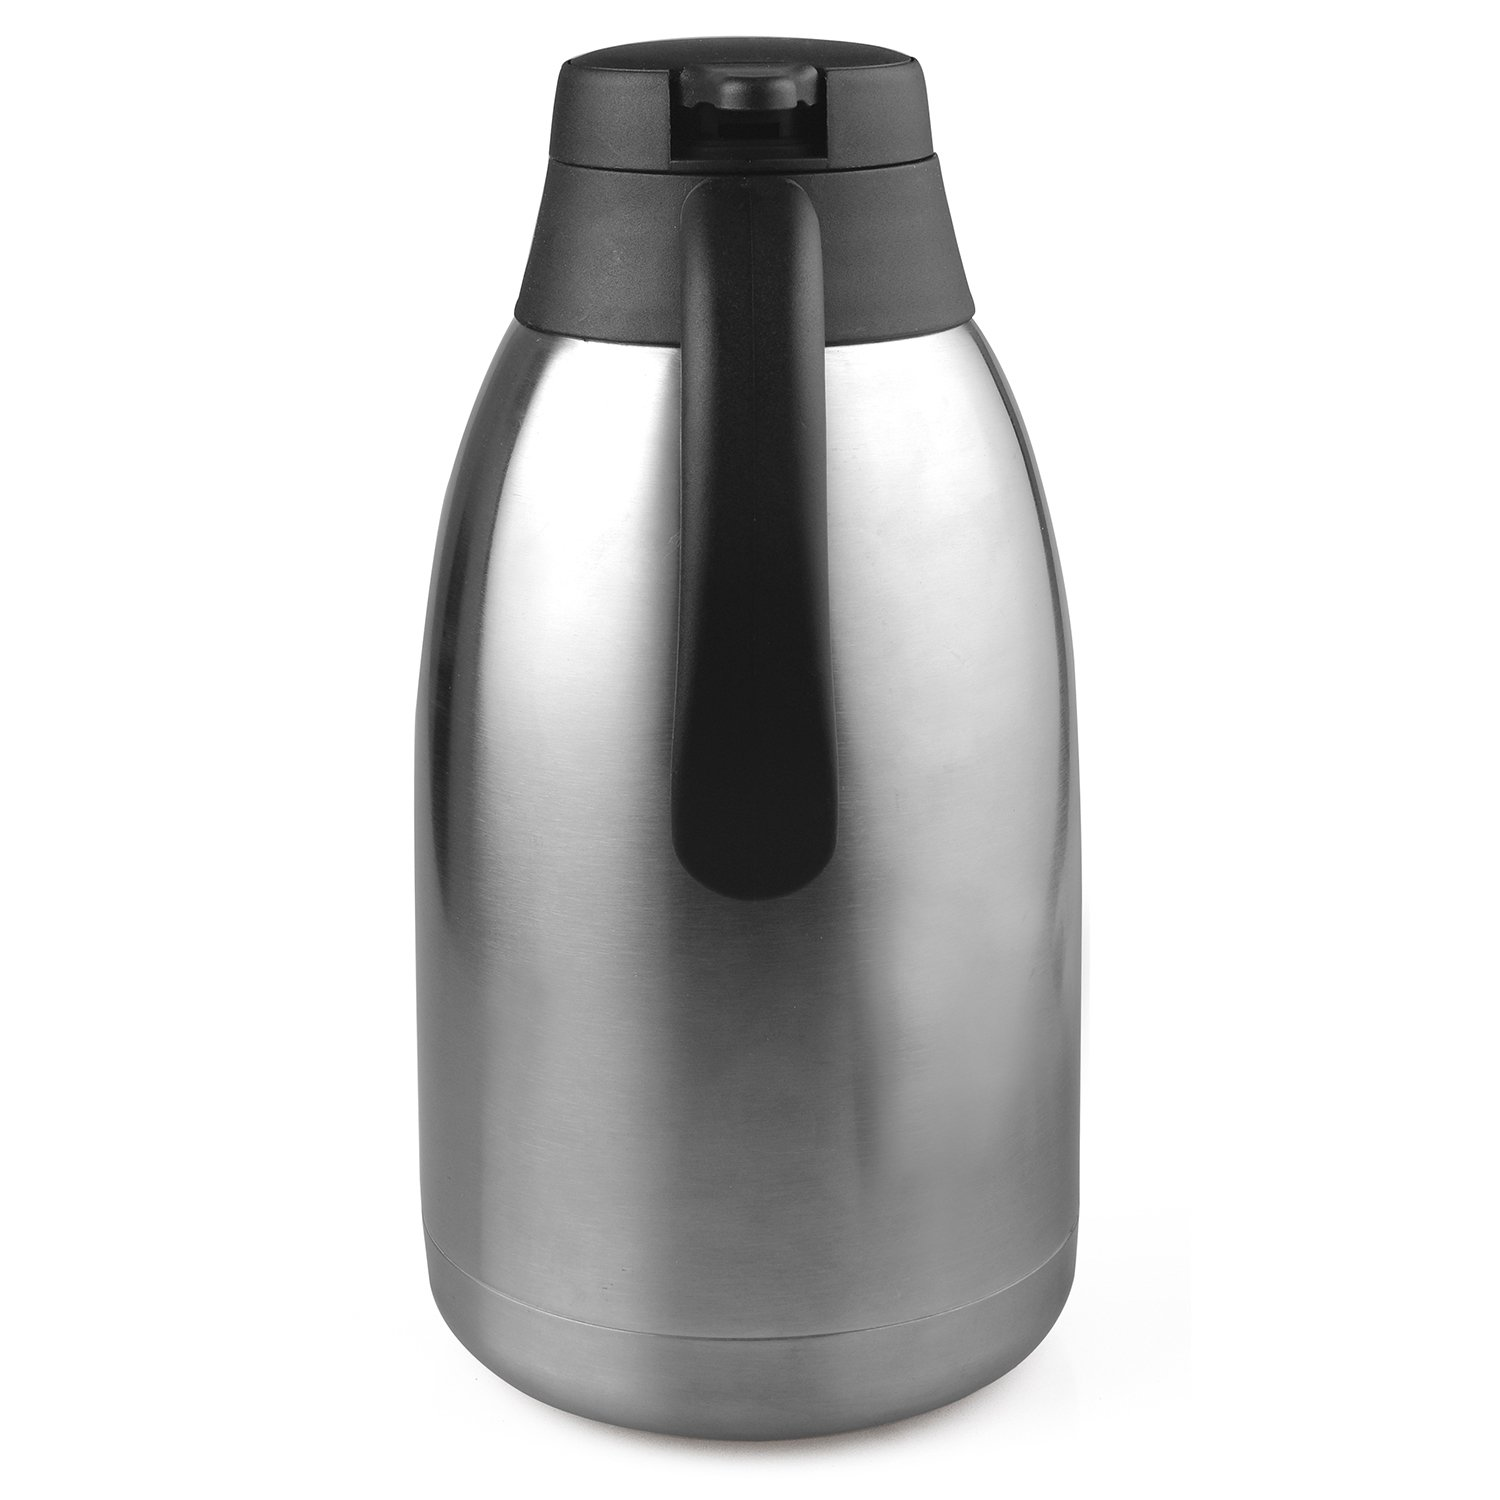 68 Oz Stainless Steel Thermal Coffee Carafe/Double Walled Vacuum Thermos / 12 Hour Heat Retention / 2 Litre by Cresimo by Cresimo (Image #6)